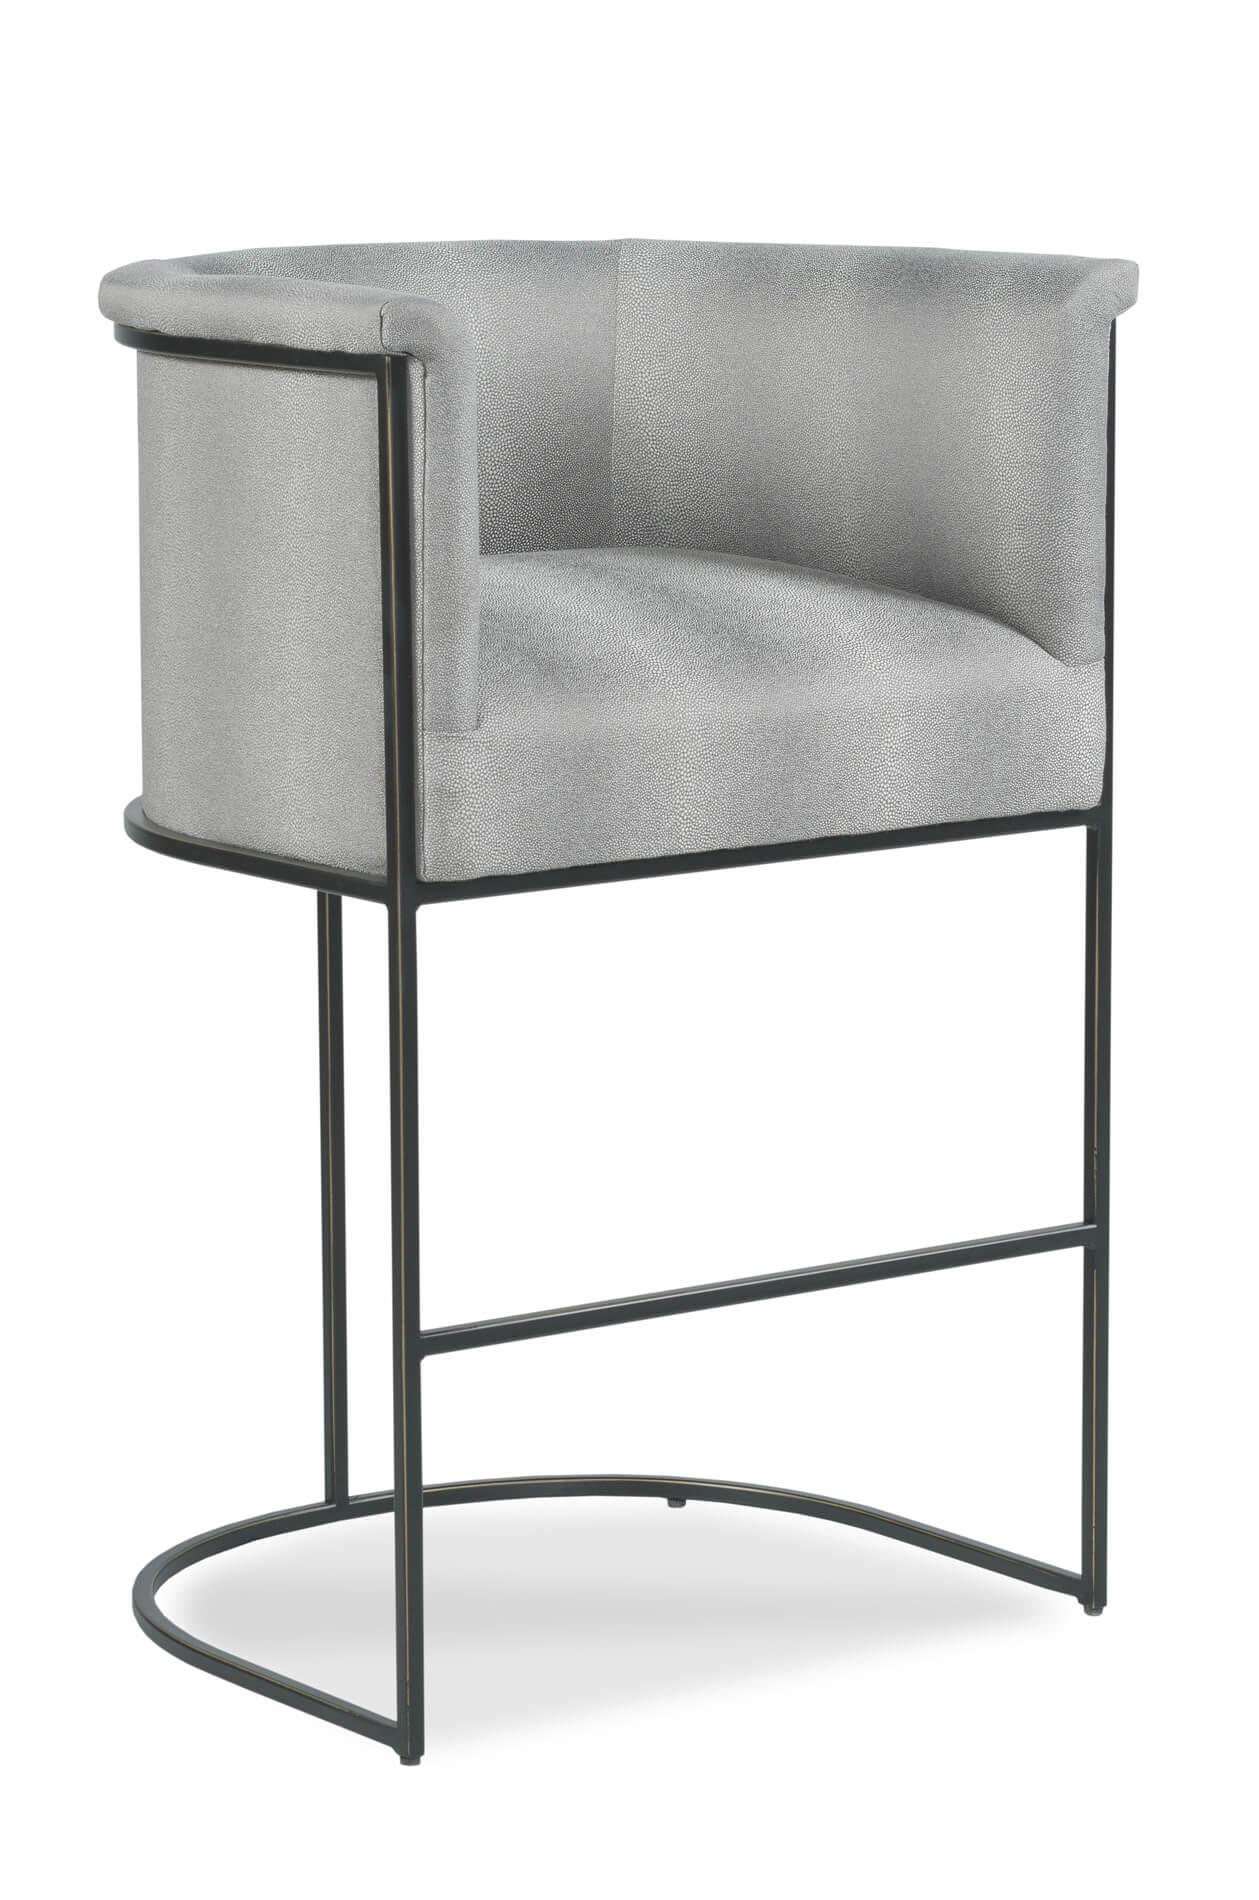 Buy Nolita Modern Upholstered Stool In Bronze Or Nickel